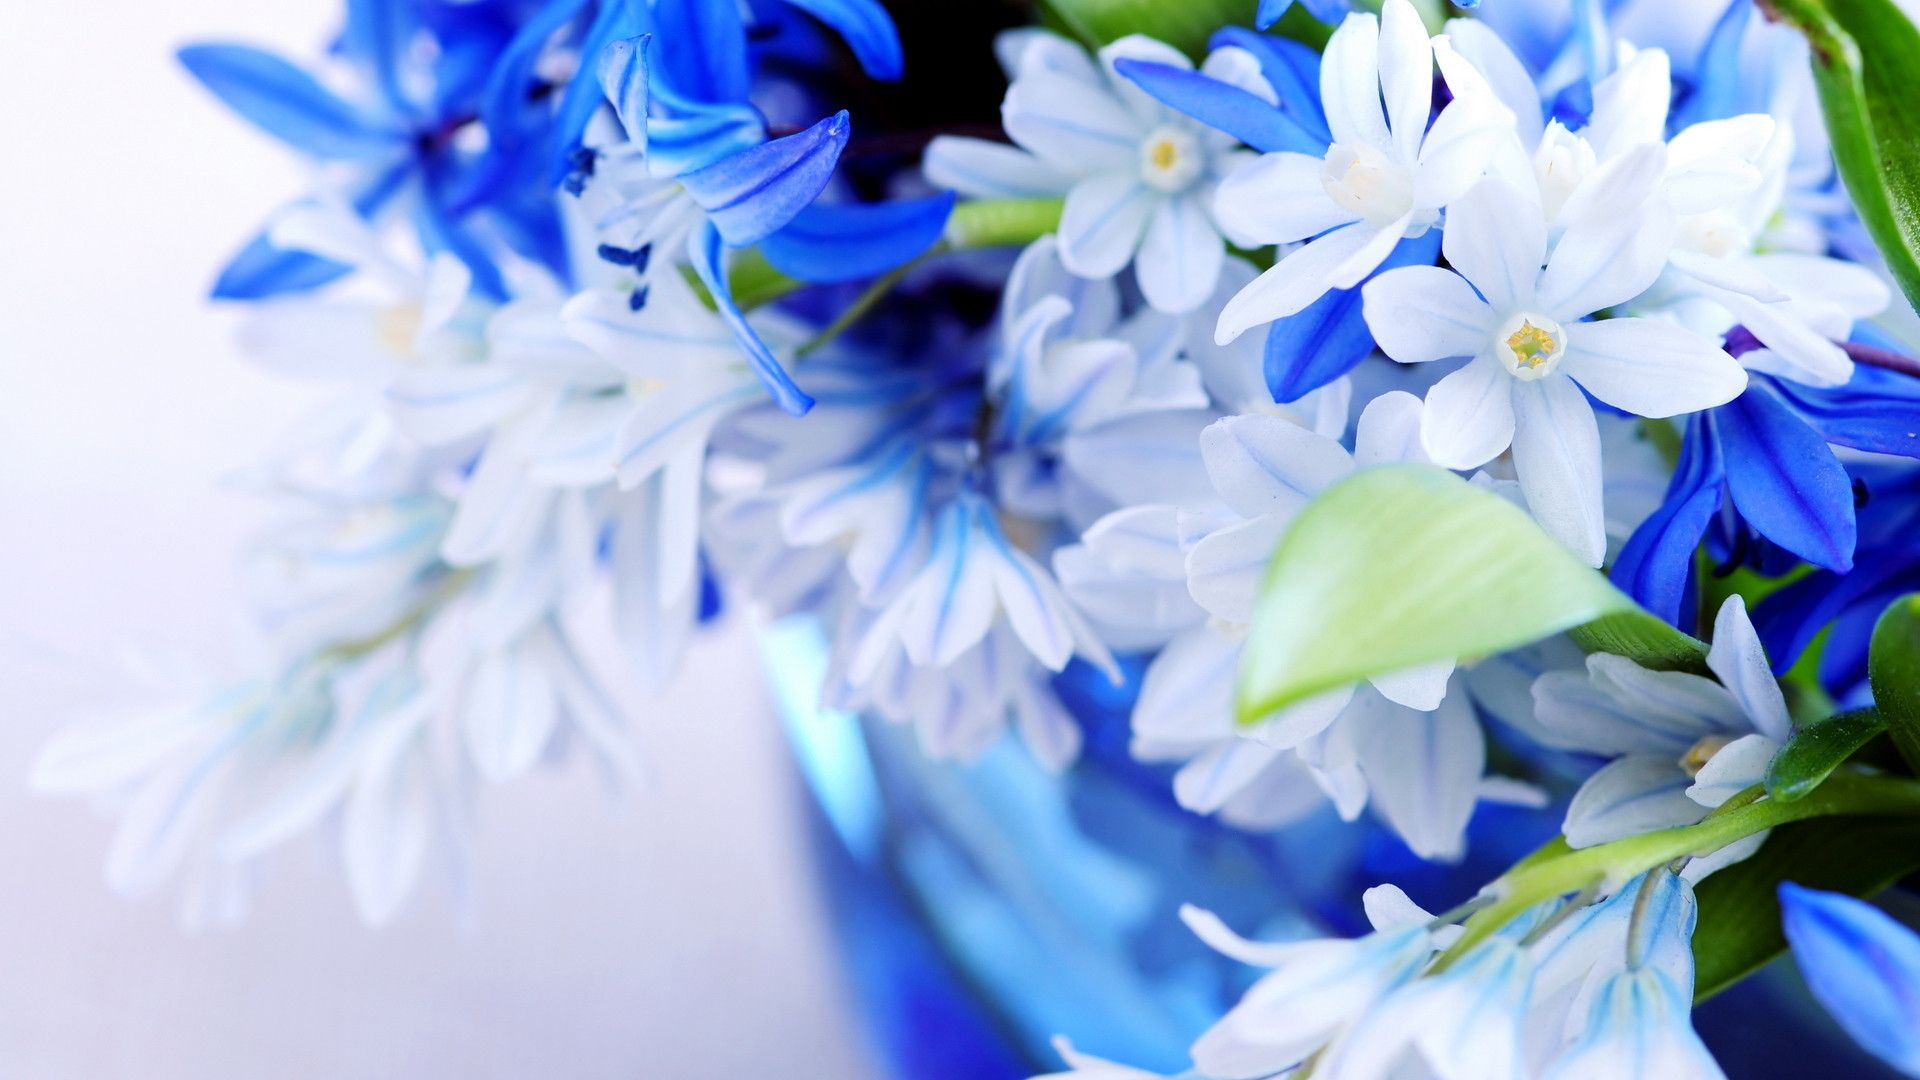 Desktop Wallpaper HD 3D Full Screen Flowers